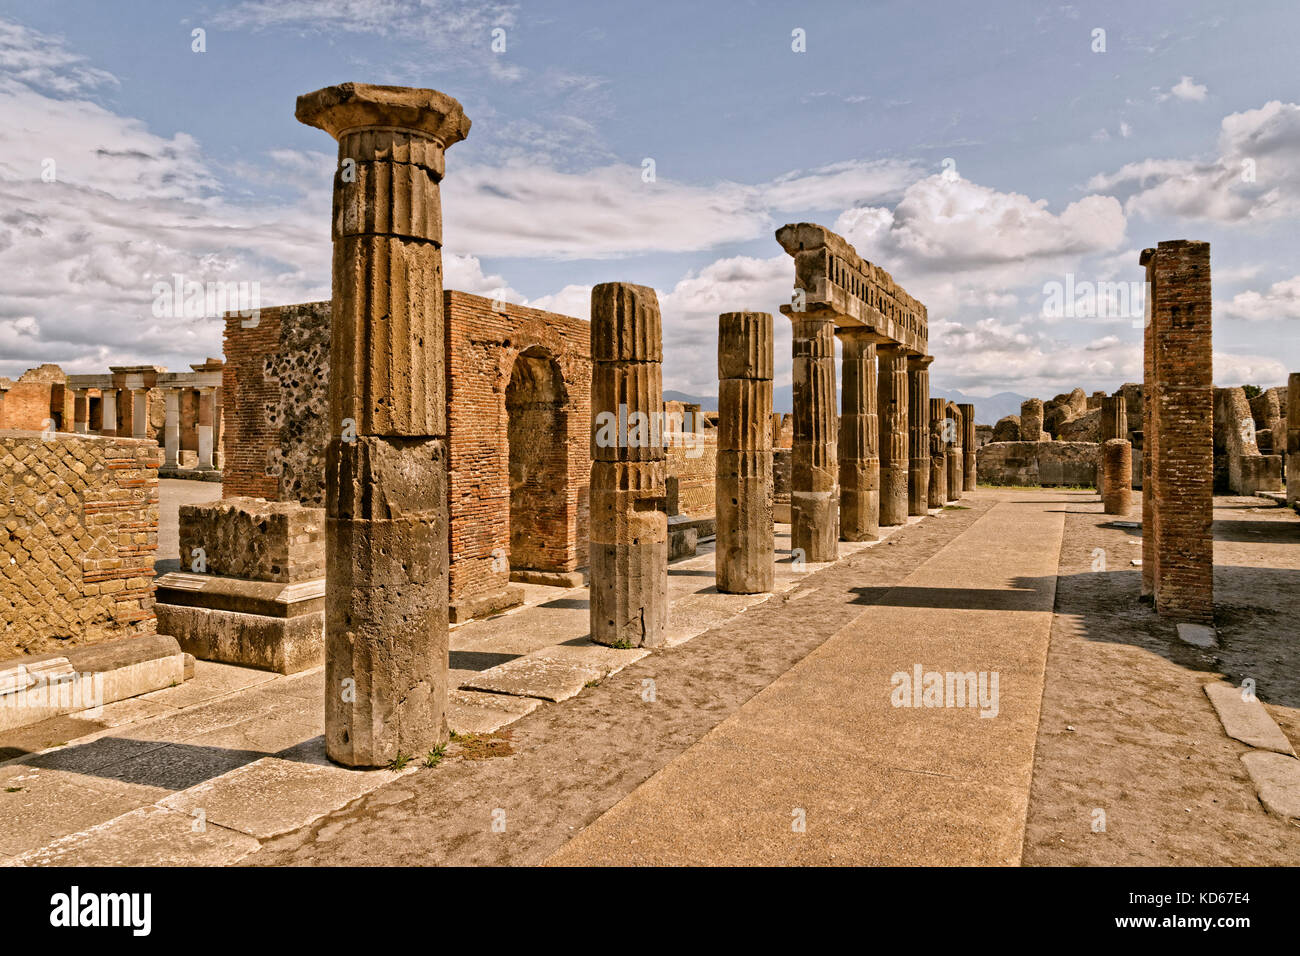 Columns at the Forum area in the ruined Roman city of Pompeii at Pompei Scavi near Naples, Italy. - Stock Image